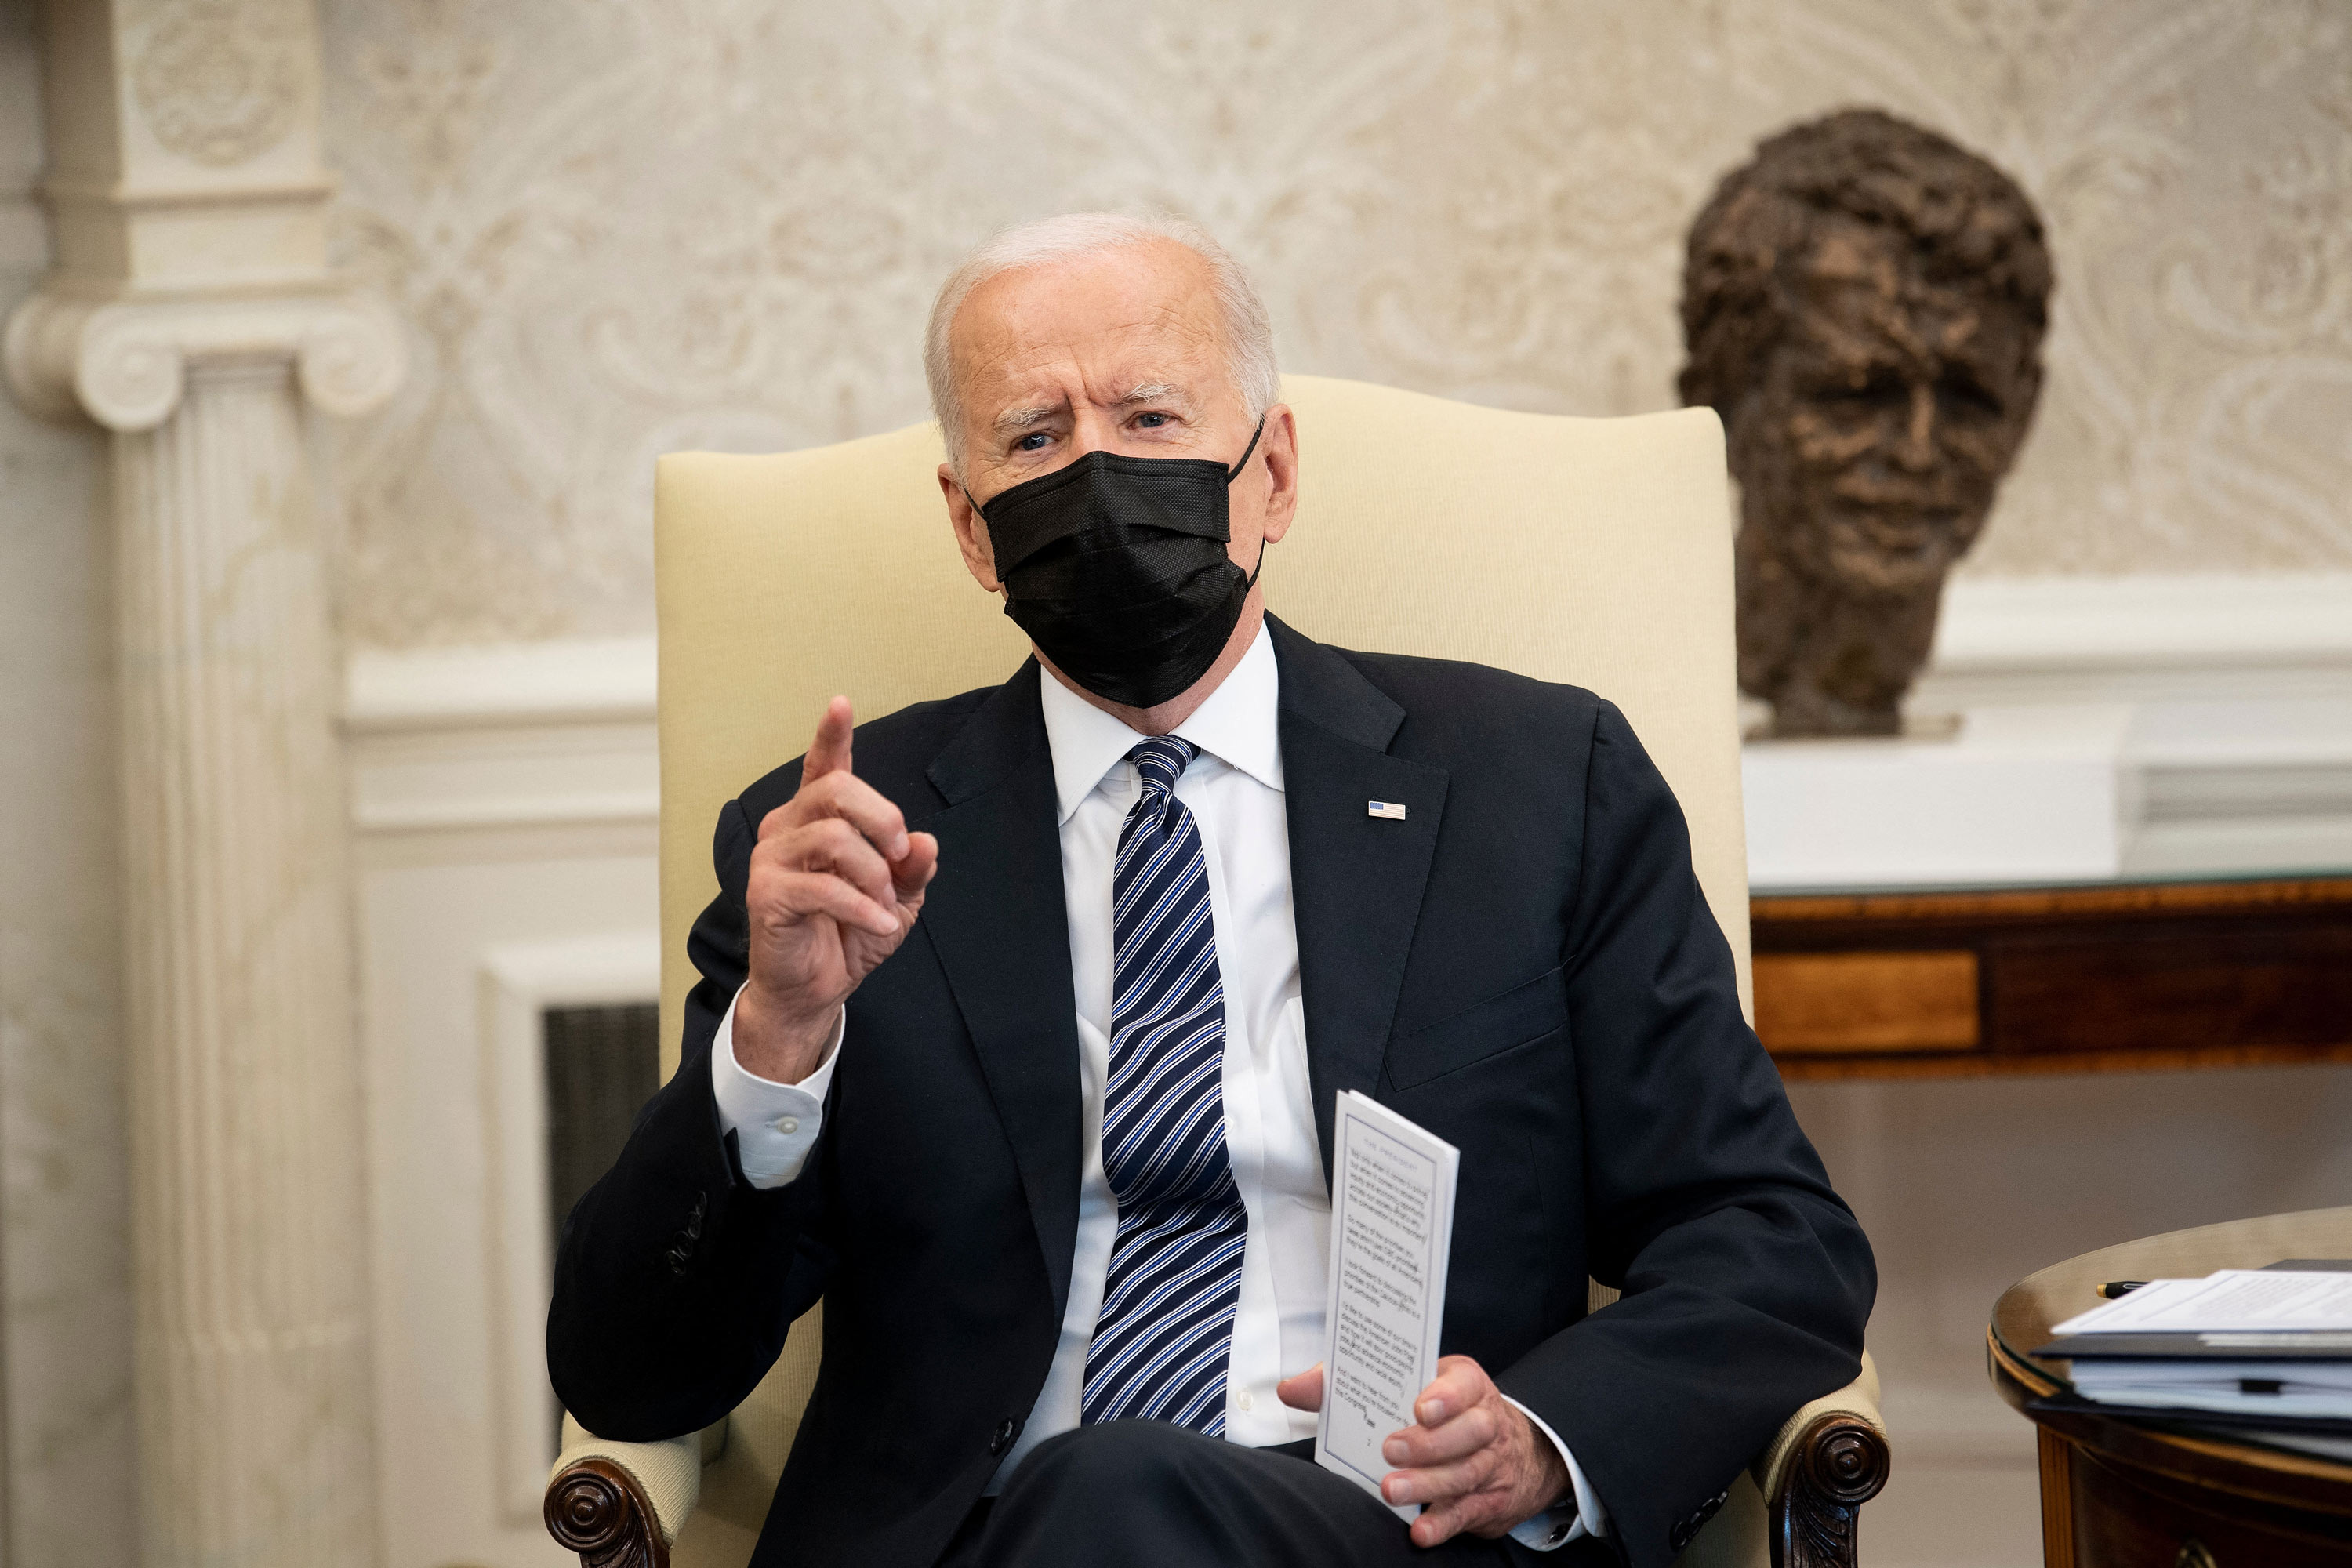 President Joe Biden speaks before a meeting in the Oval Office of the White House on April 13 in Washington, DC.